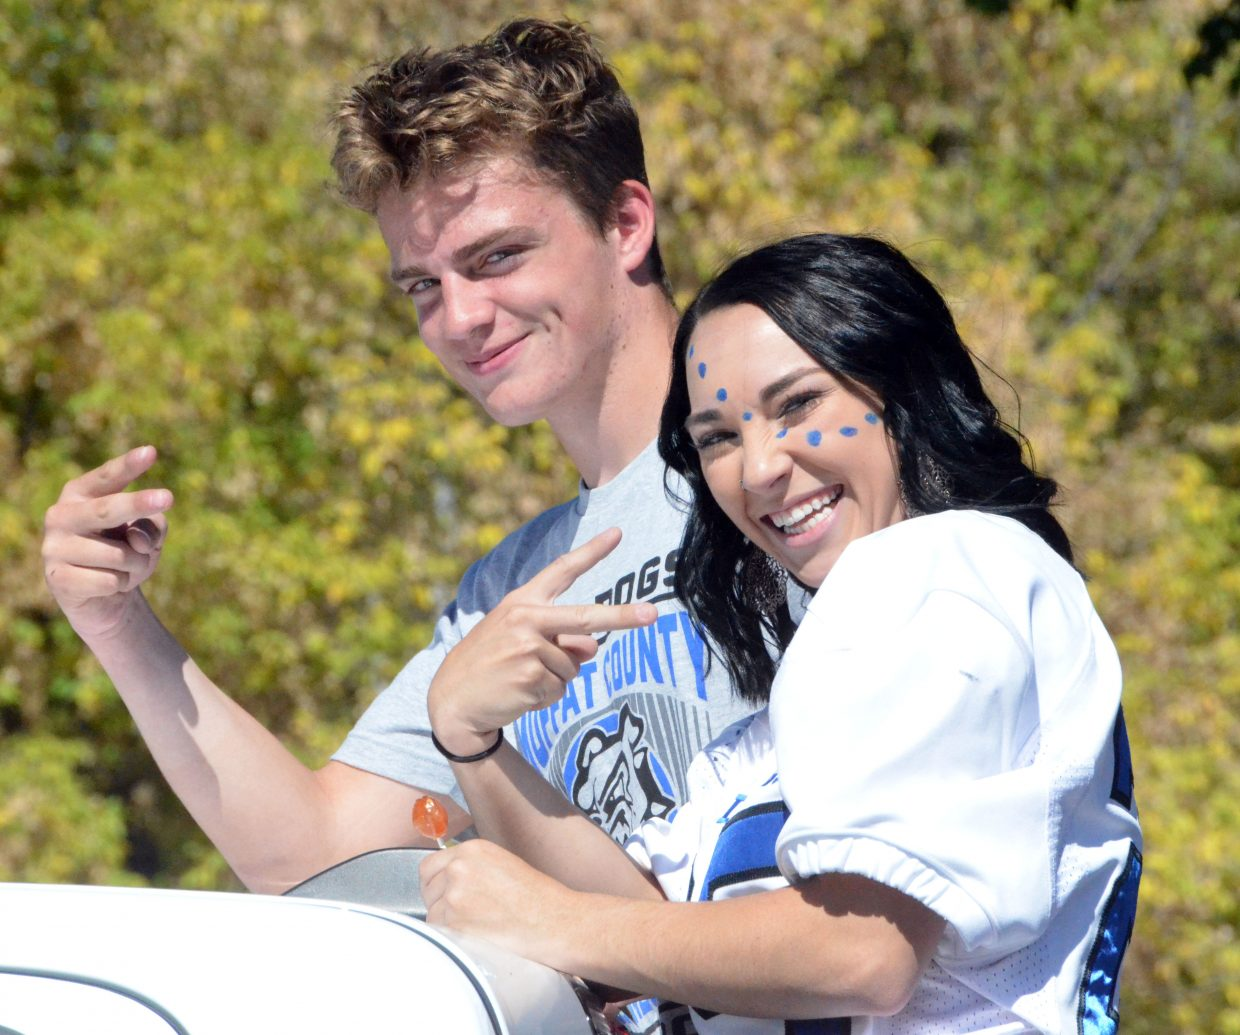 Moffat County High School's Jared Atkin and Quinn Pinnt are the 2018 king and queen during the Homecoming parade Friday.